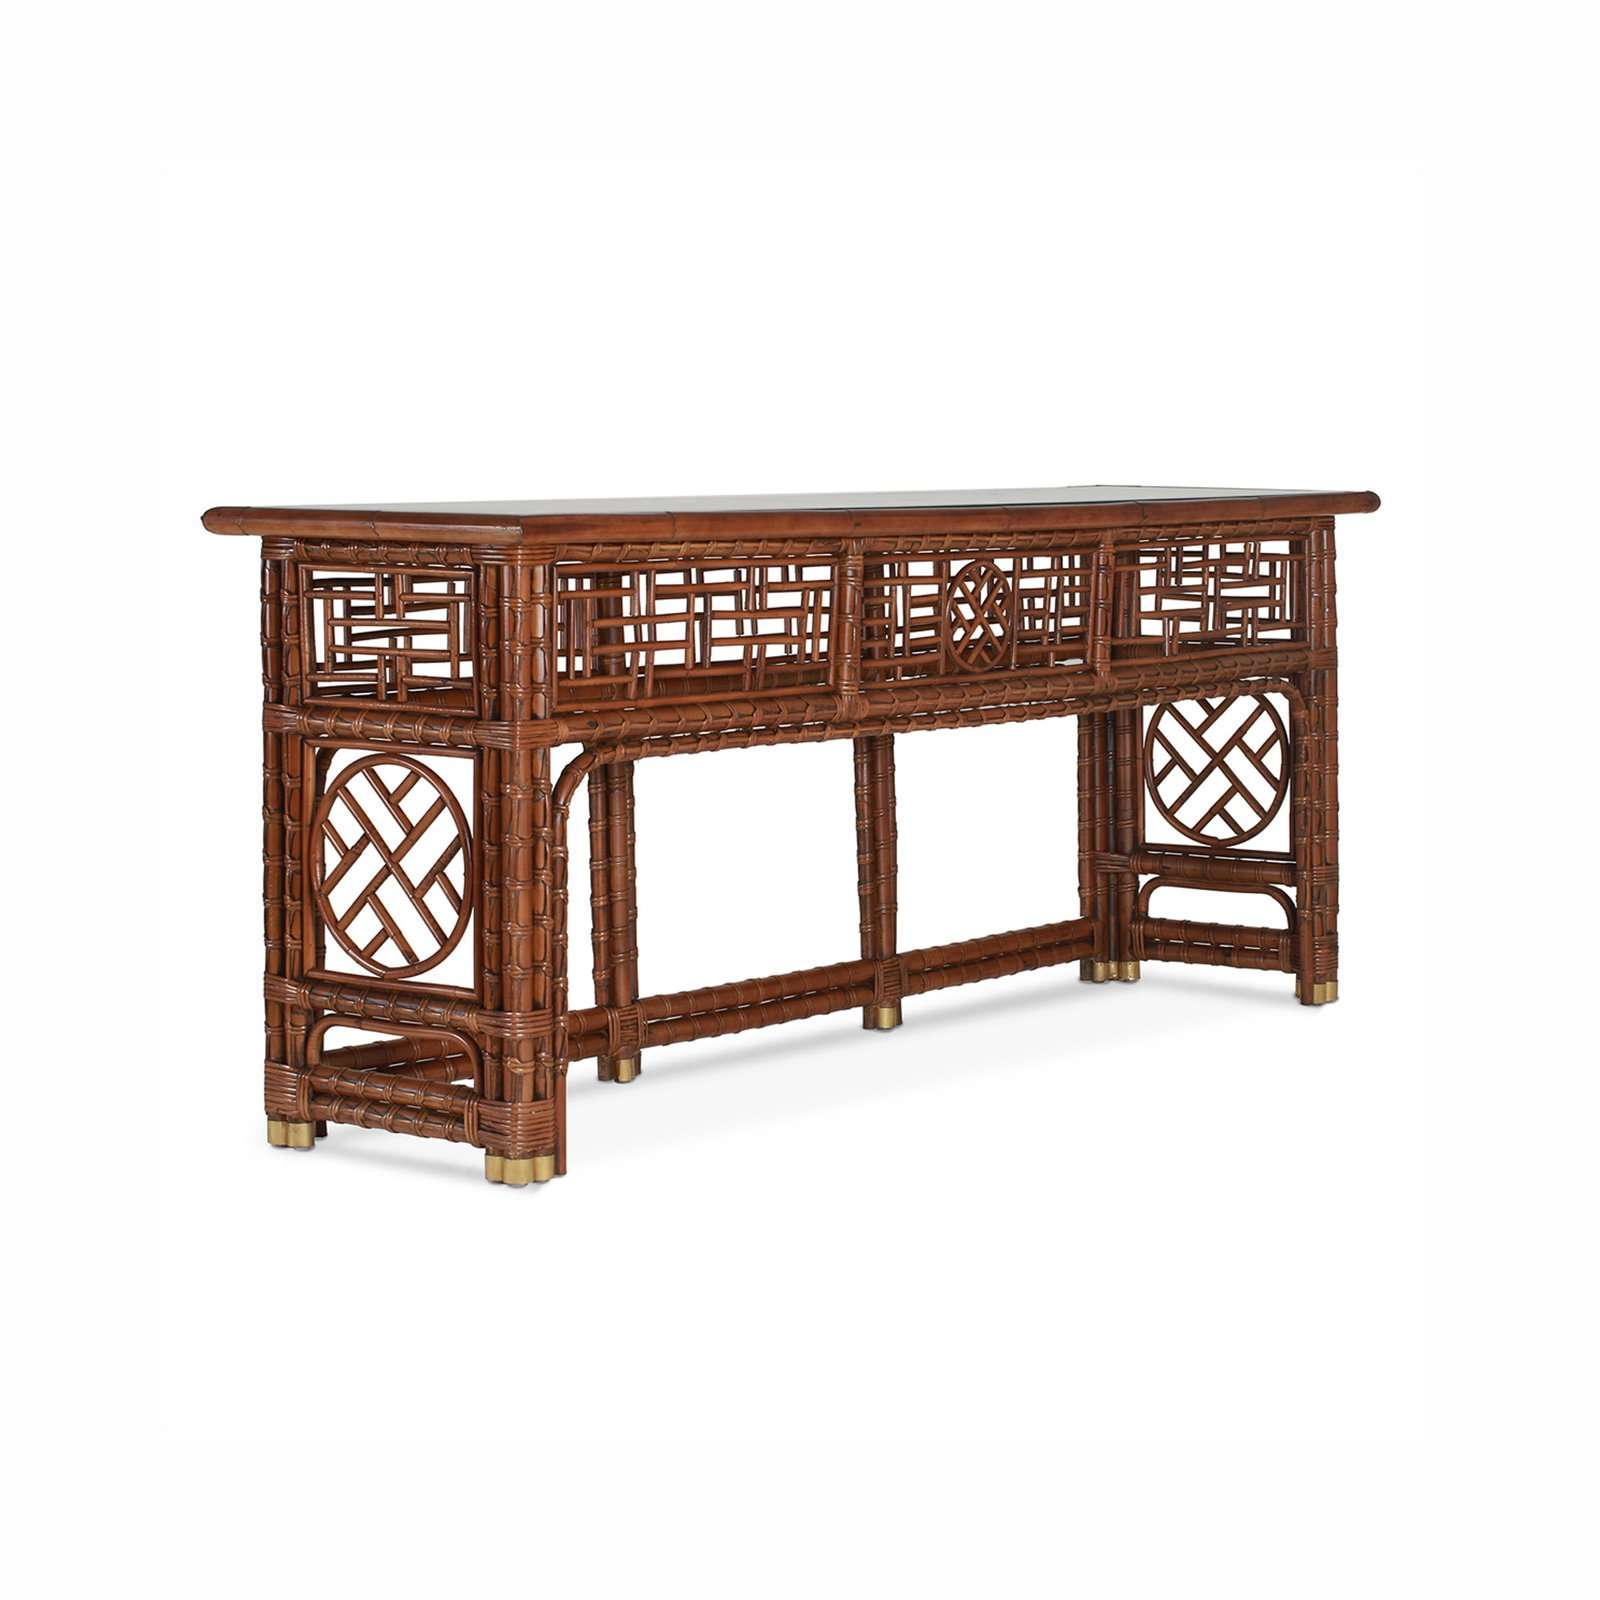 MANDALAY CONSOLE 1 - STUART MEMBERY HOME COLLECTION